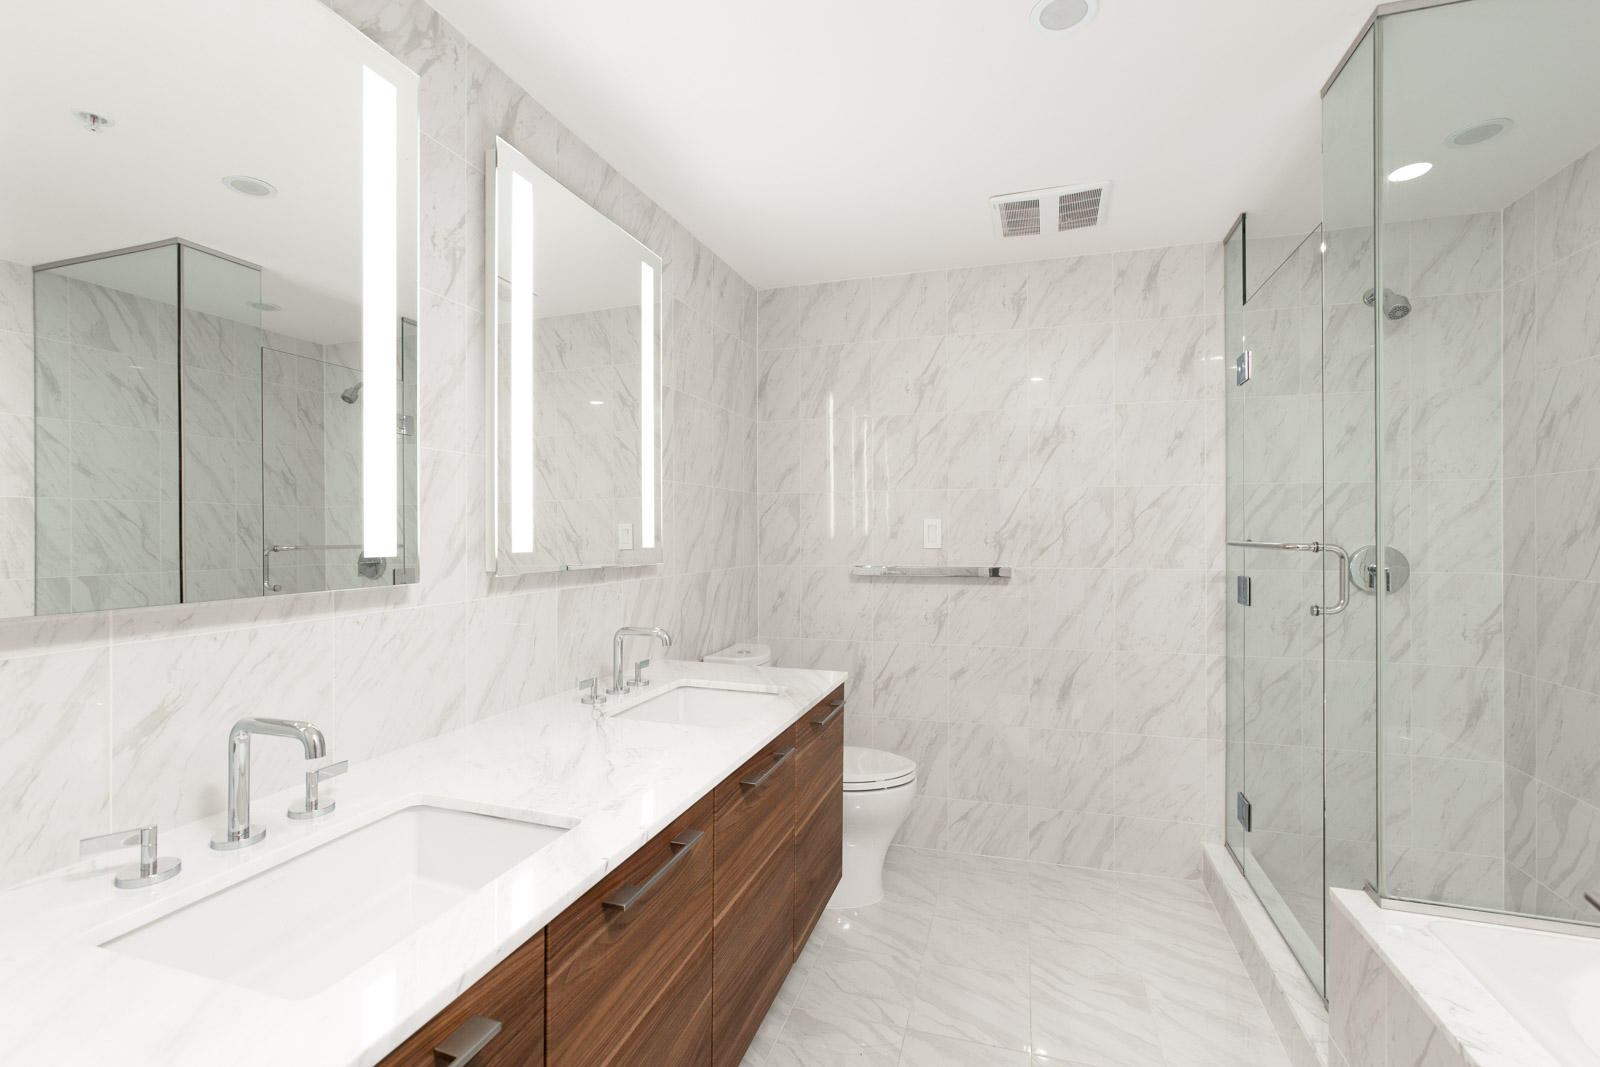 Spacious bathroom with modern bathroom fixtures; large mirrors with adequate lighting and marble countertops with sink storage underneath, and a shower finished with a sleek glass door in a rental condo in Vancouver offered by Birds Nest Properties